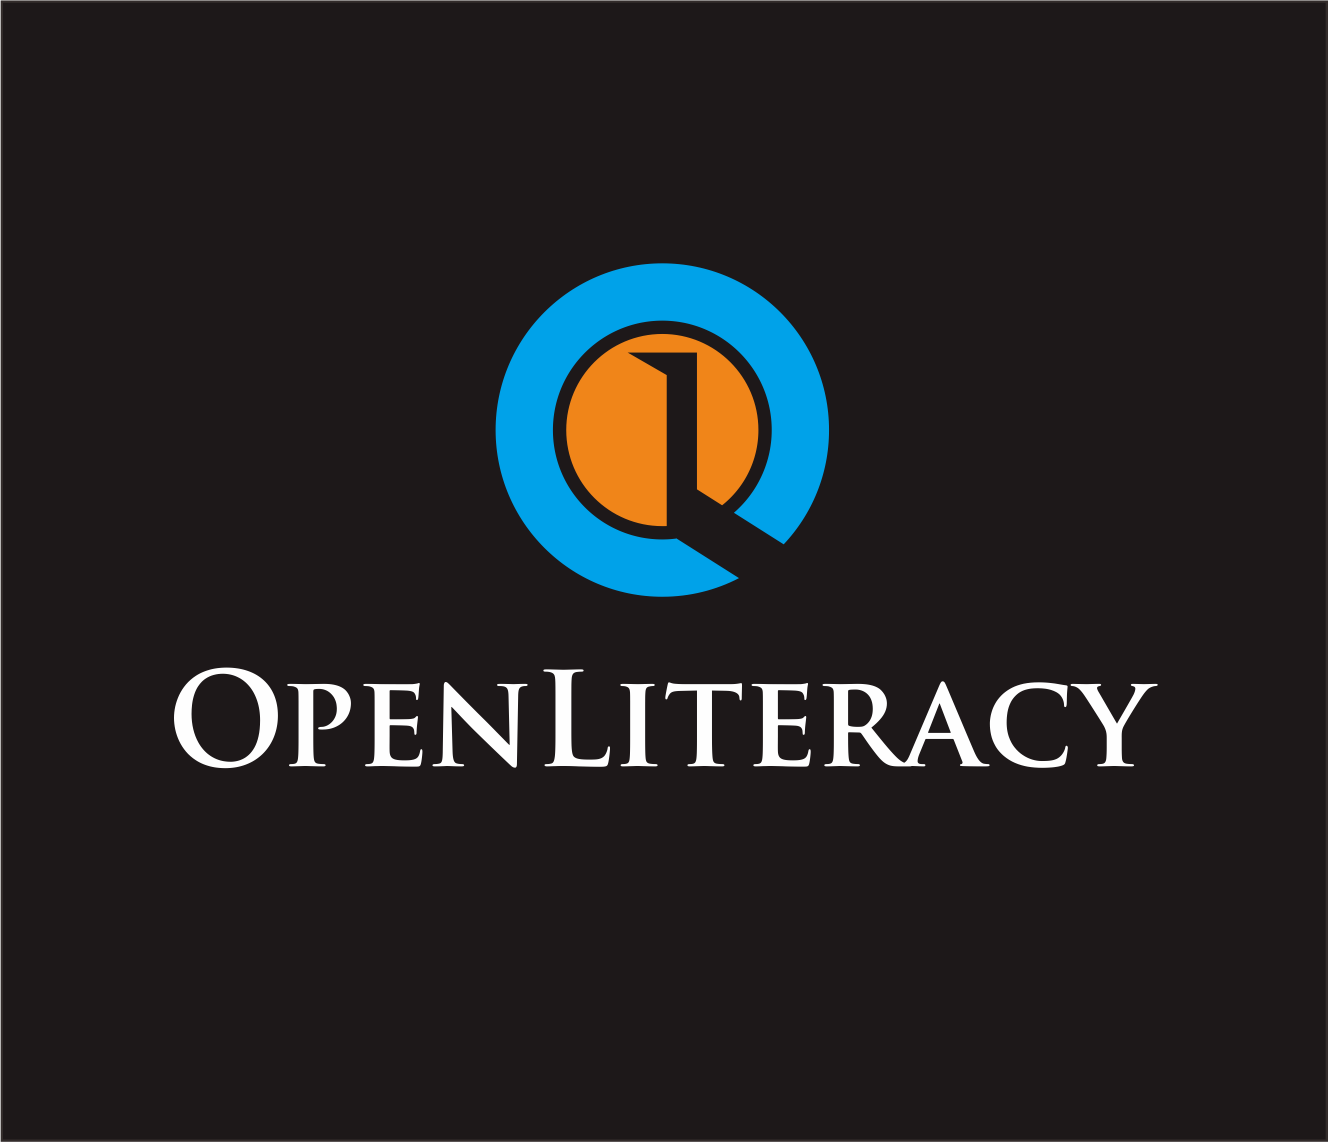 Logo Design by Armada Jamaluddin - Entry No. 82 in the Logo Design Contest Inspiring Logo Design for OpenLiteracy.